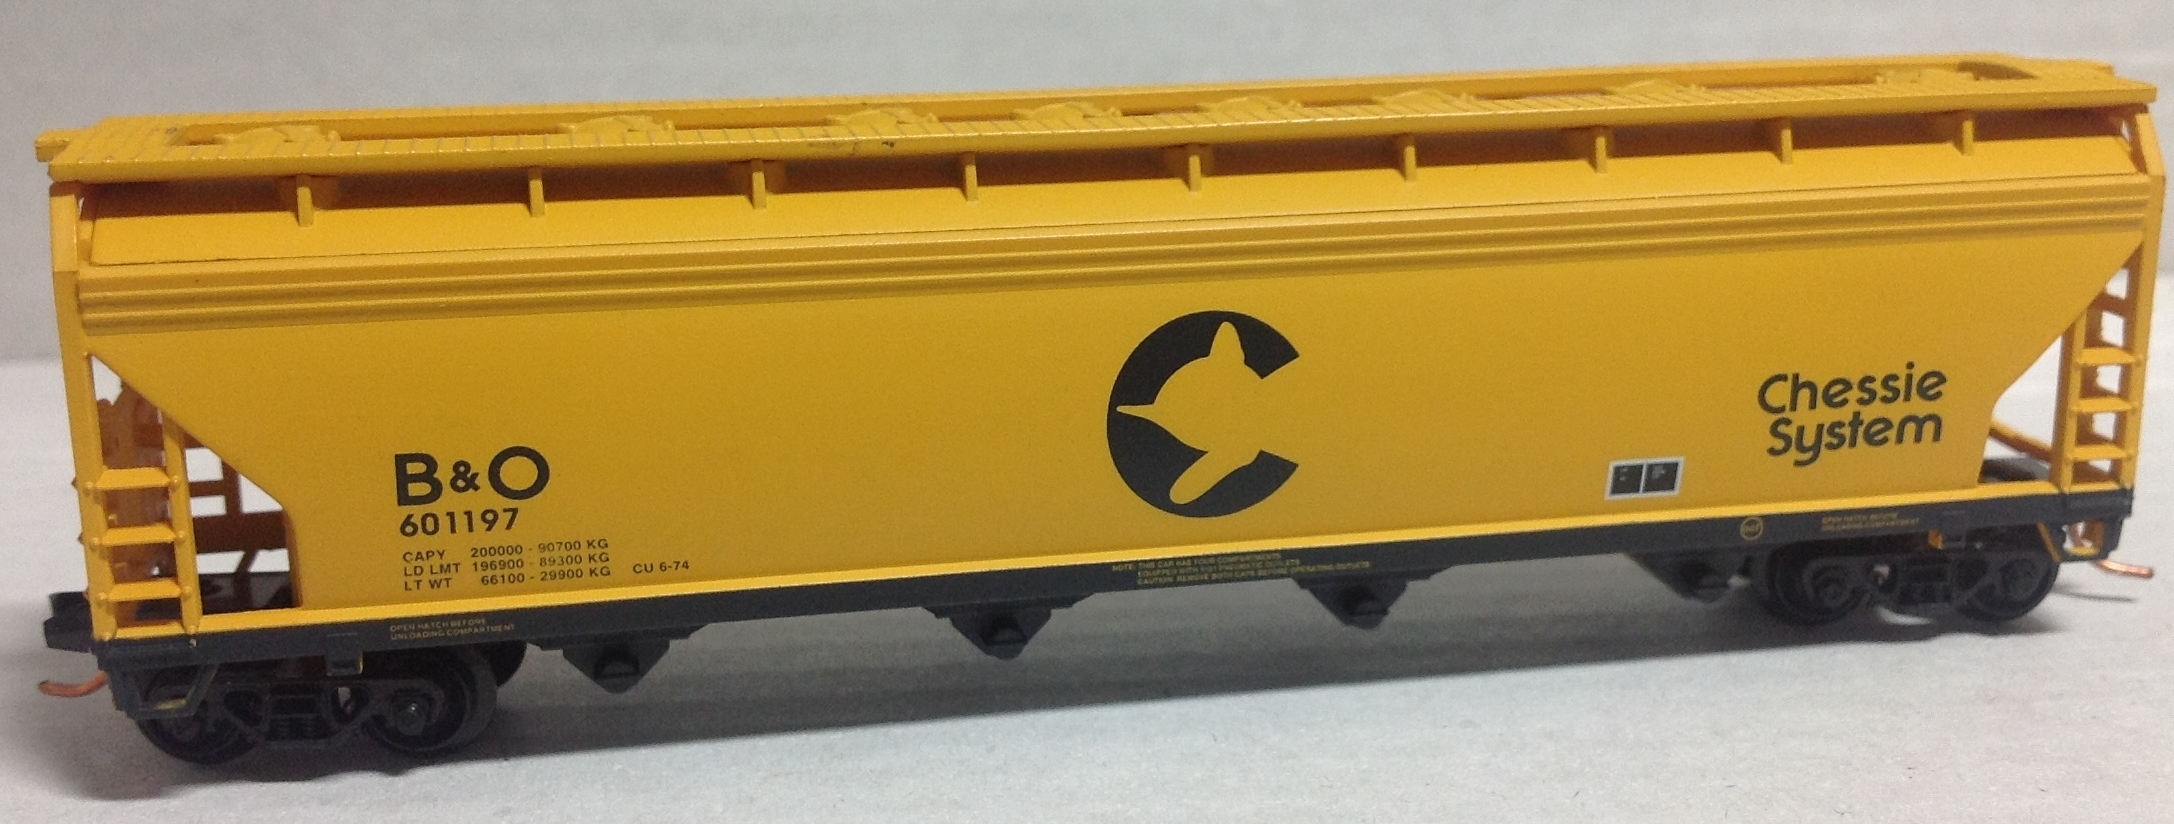 N Scale - Atlas - 39571 - Covered Hopper, 4-Bay, ACF Centerflow - Chessie System - 601197